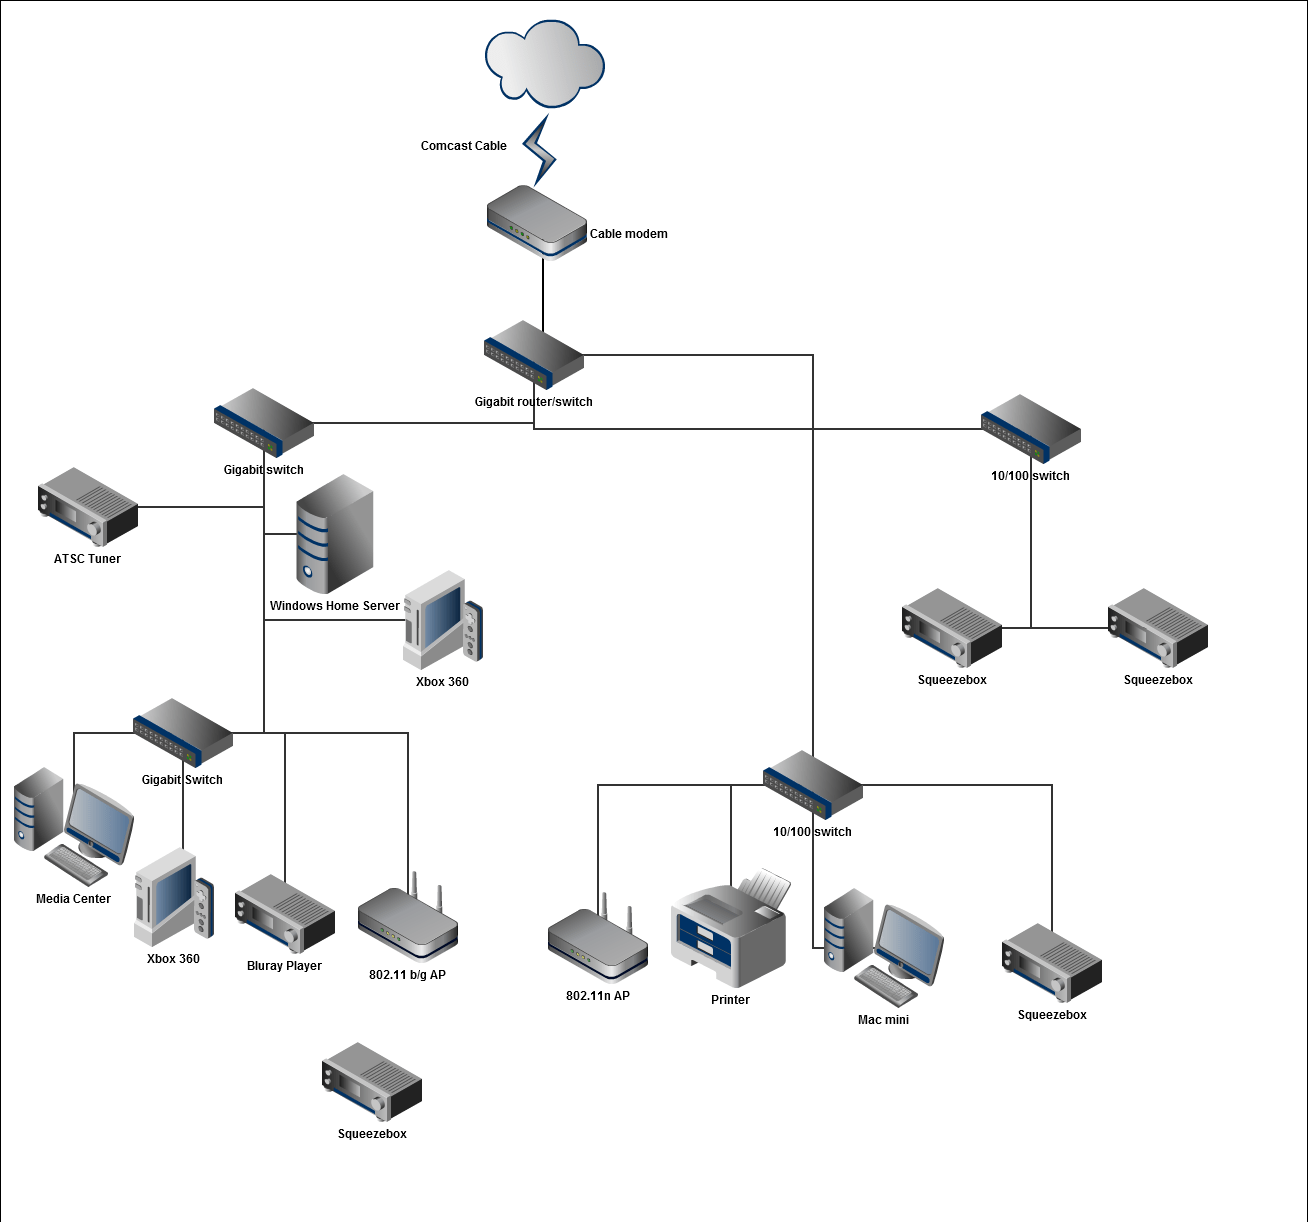 Wired Home Network Diagram On Wired Images Free Download Images